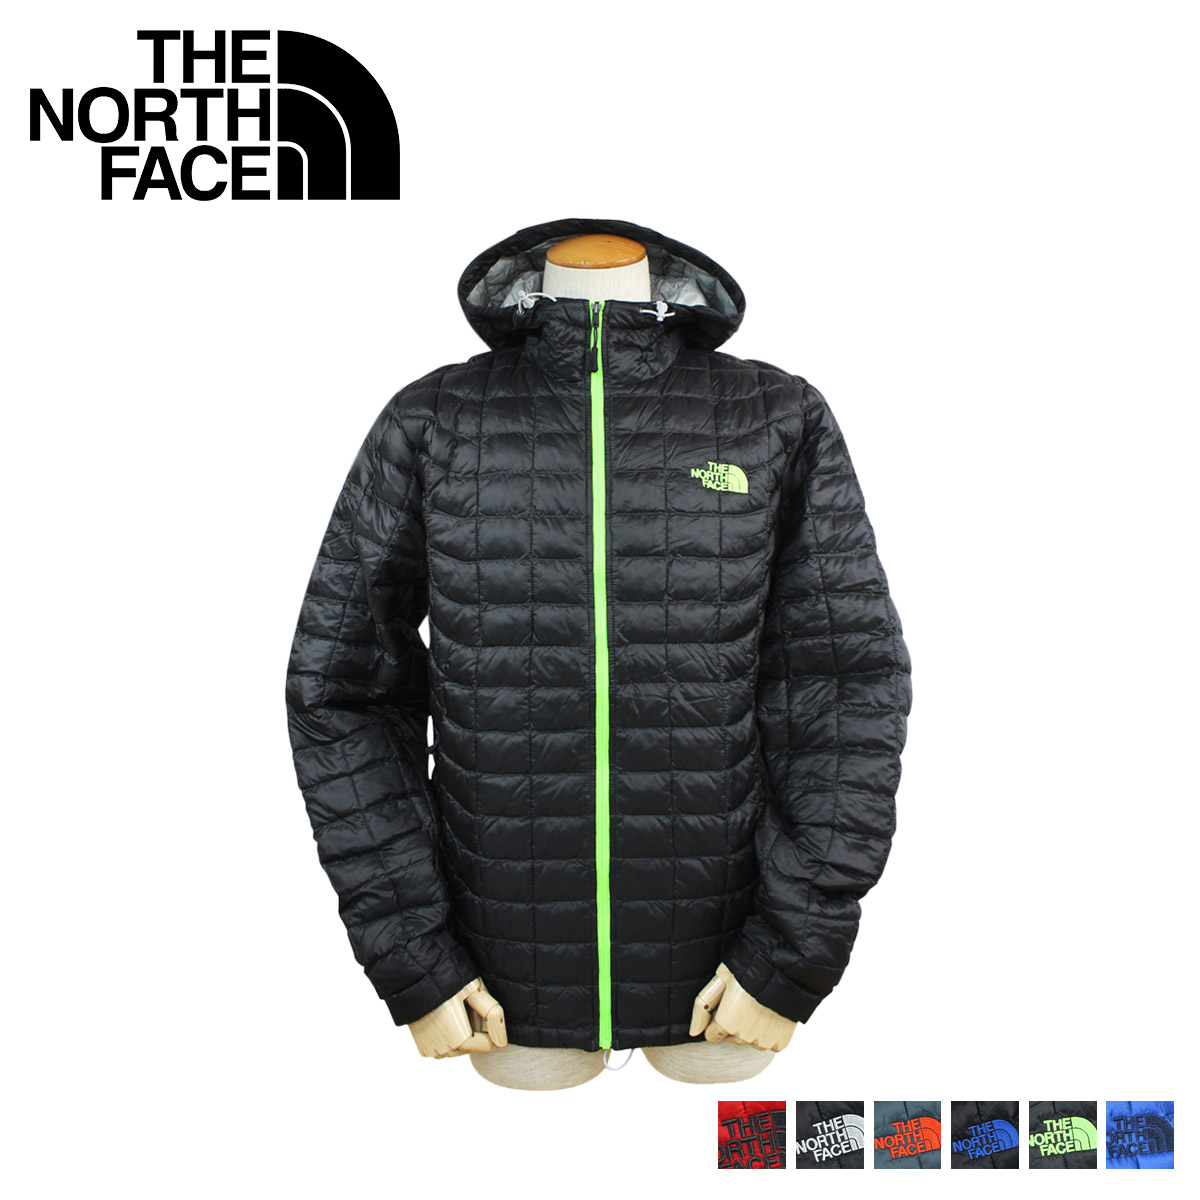 THE NORTH FACE ノースフェイス ジャケット MEN'S THERMOBALL HOODIE メンズ 【CLEARANCE】